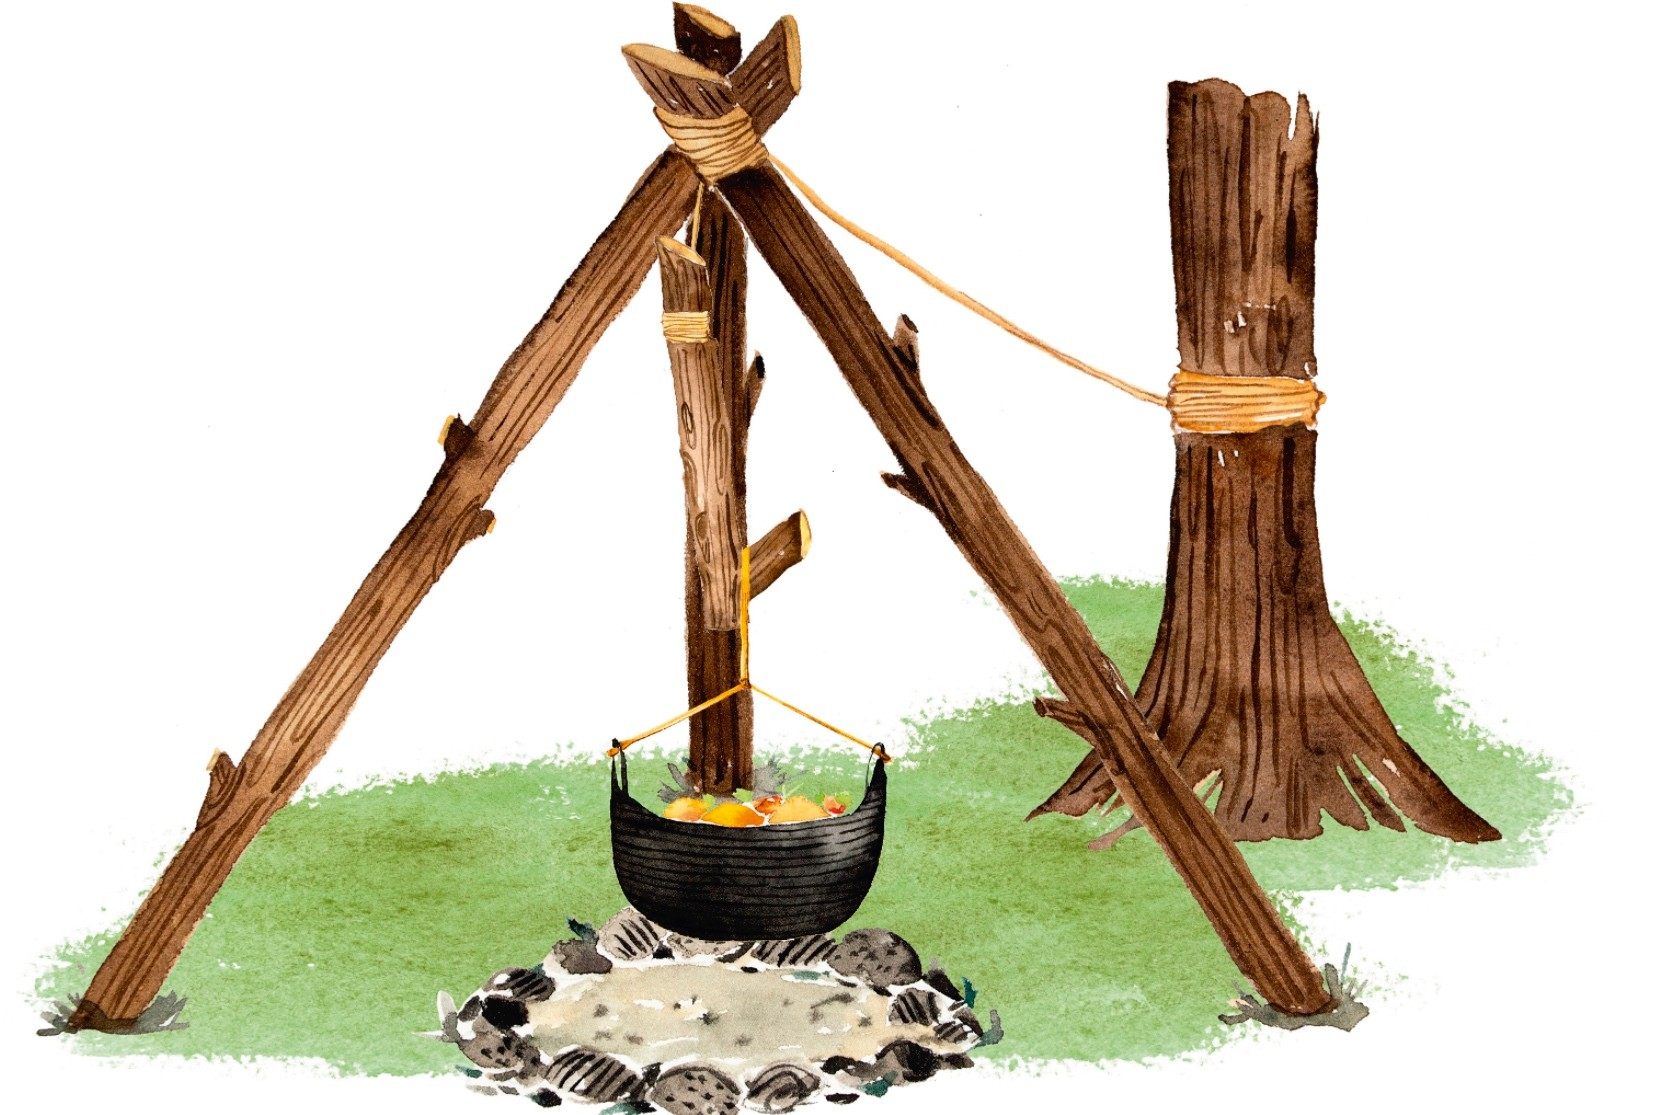 How to make a cooking campfire tripod ©Enya Todd